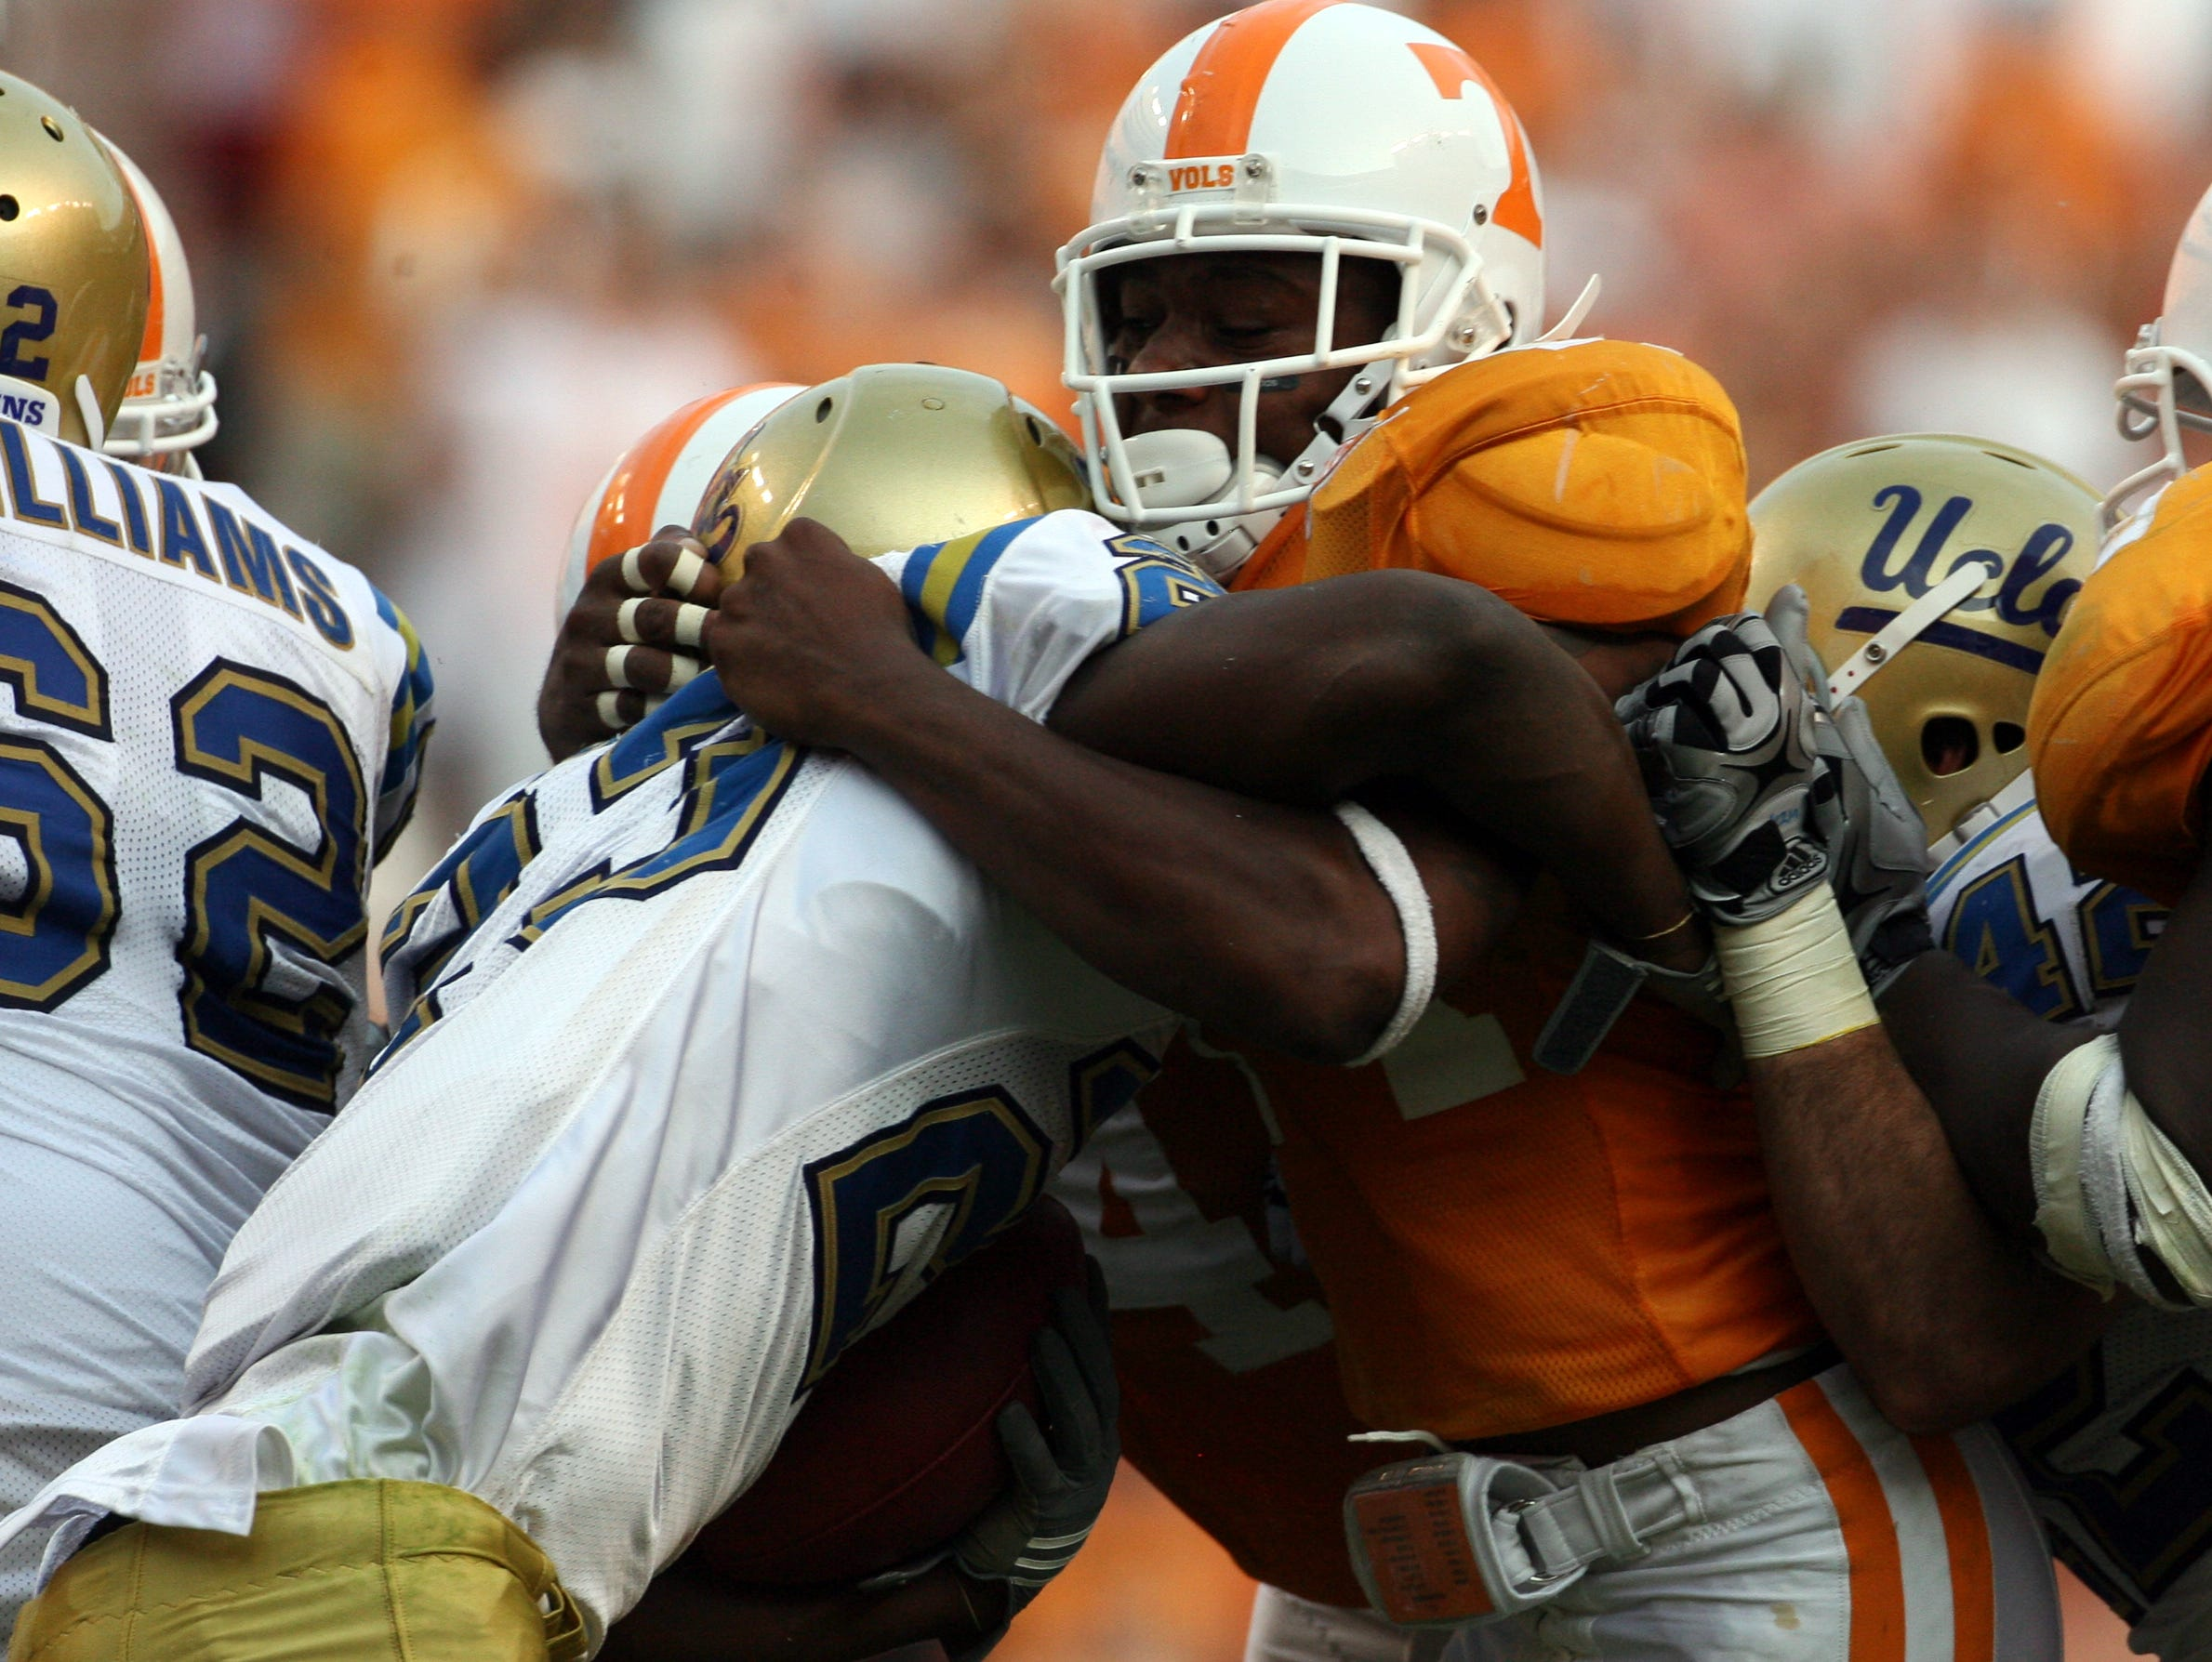 Tennessee cornerback Eric Berry (14) holds on as UCLA tailback Johnathan Franklin (23) moves the ball on Saturday, Sept. 12, 2009 at Neyland Stadium.  The Vols lost 19-15 to the Bruins.